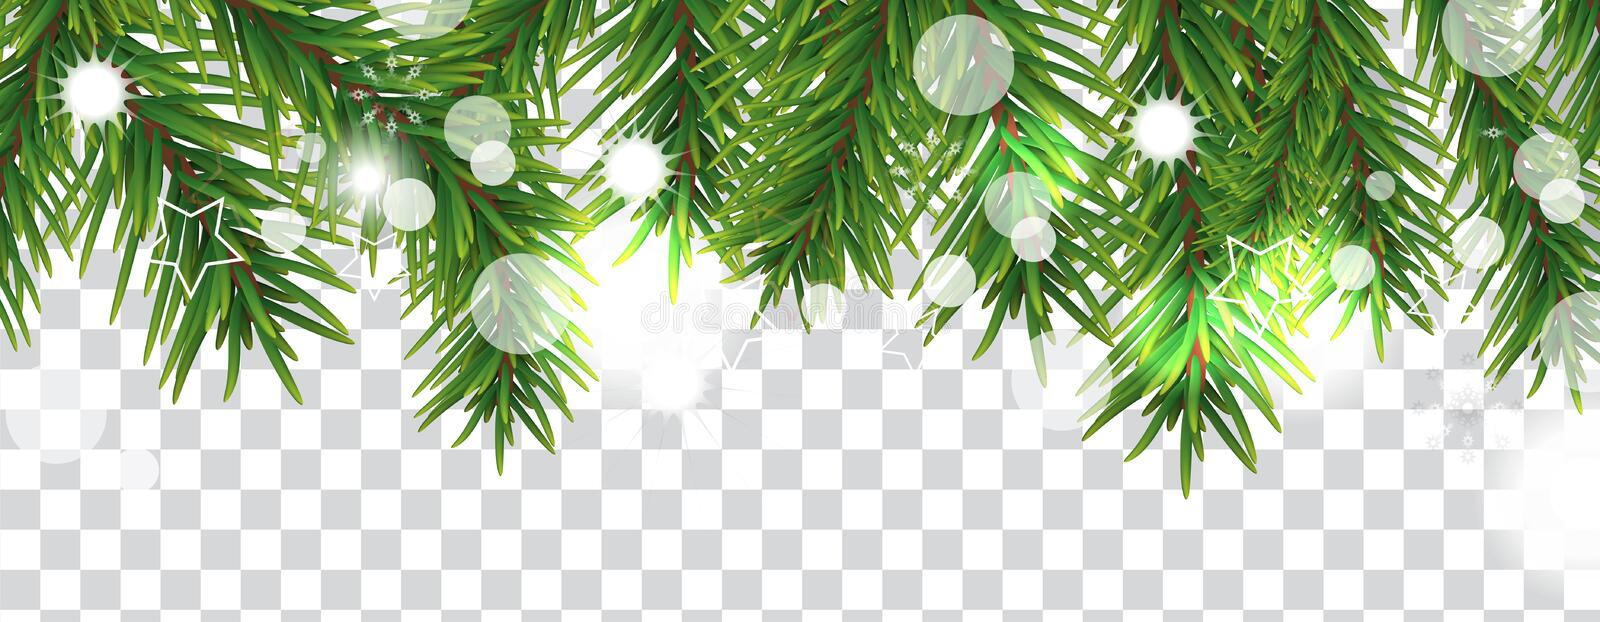 Christmas and happy New Year border of Christmas tree branches on transparent background. Holidays decoration. Vector vector illustration